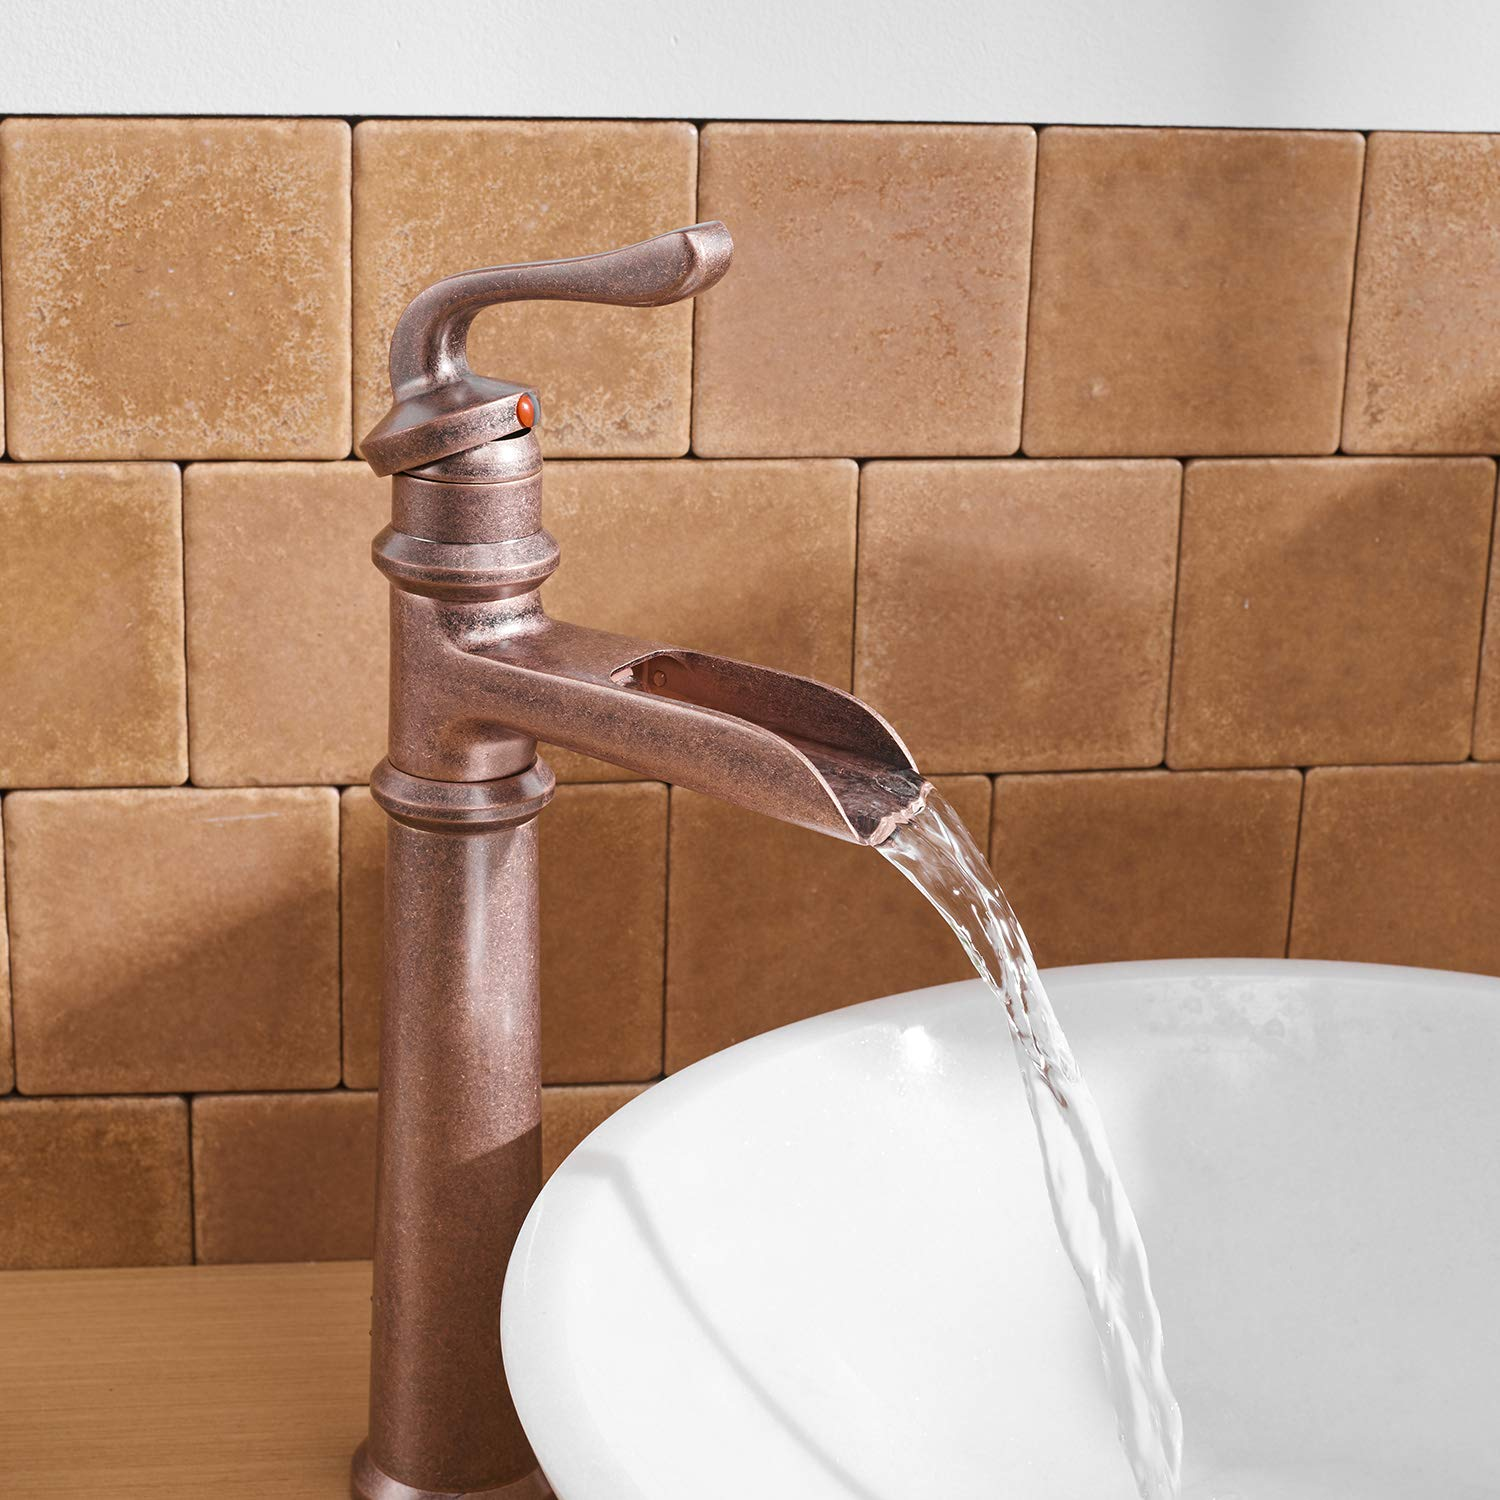 BWE Waterfall Single Handle One Hole Chrome Commercial Faucets Bathroom Vessel Sink Faucet Deck Mount 6560H-C